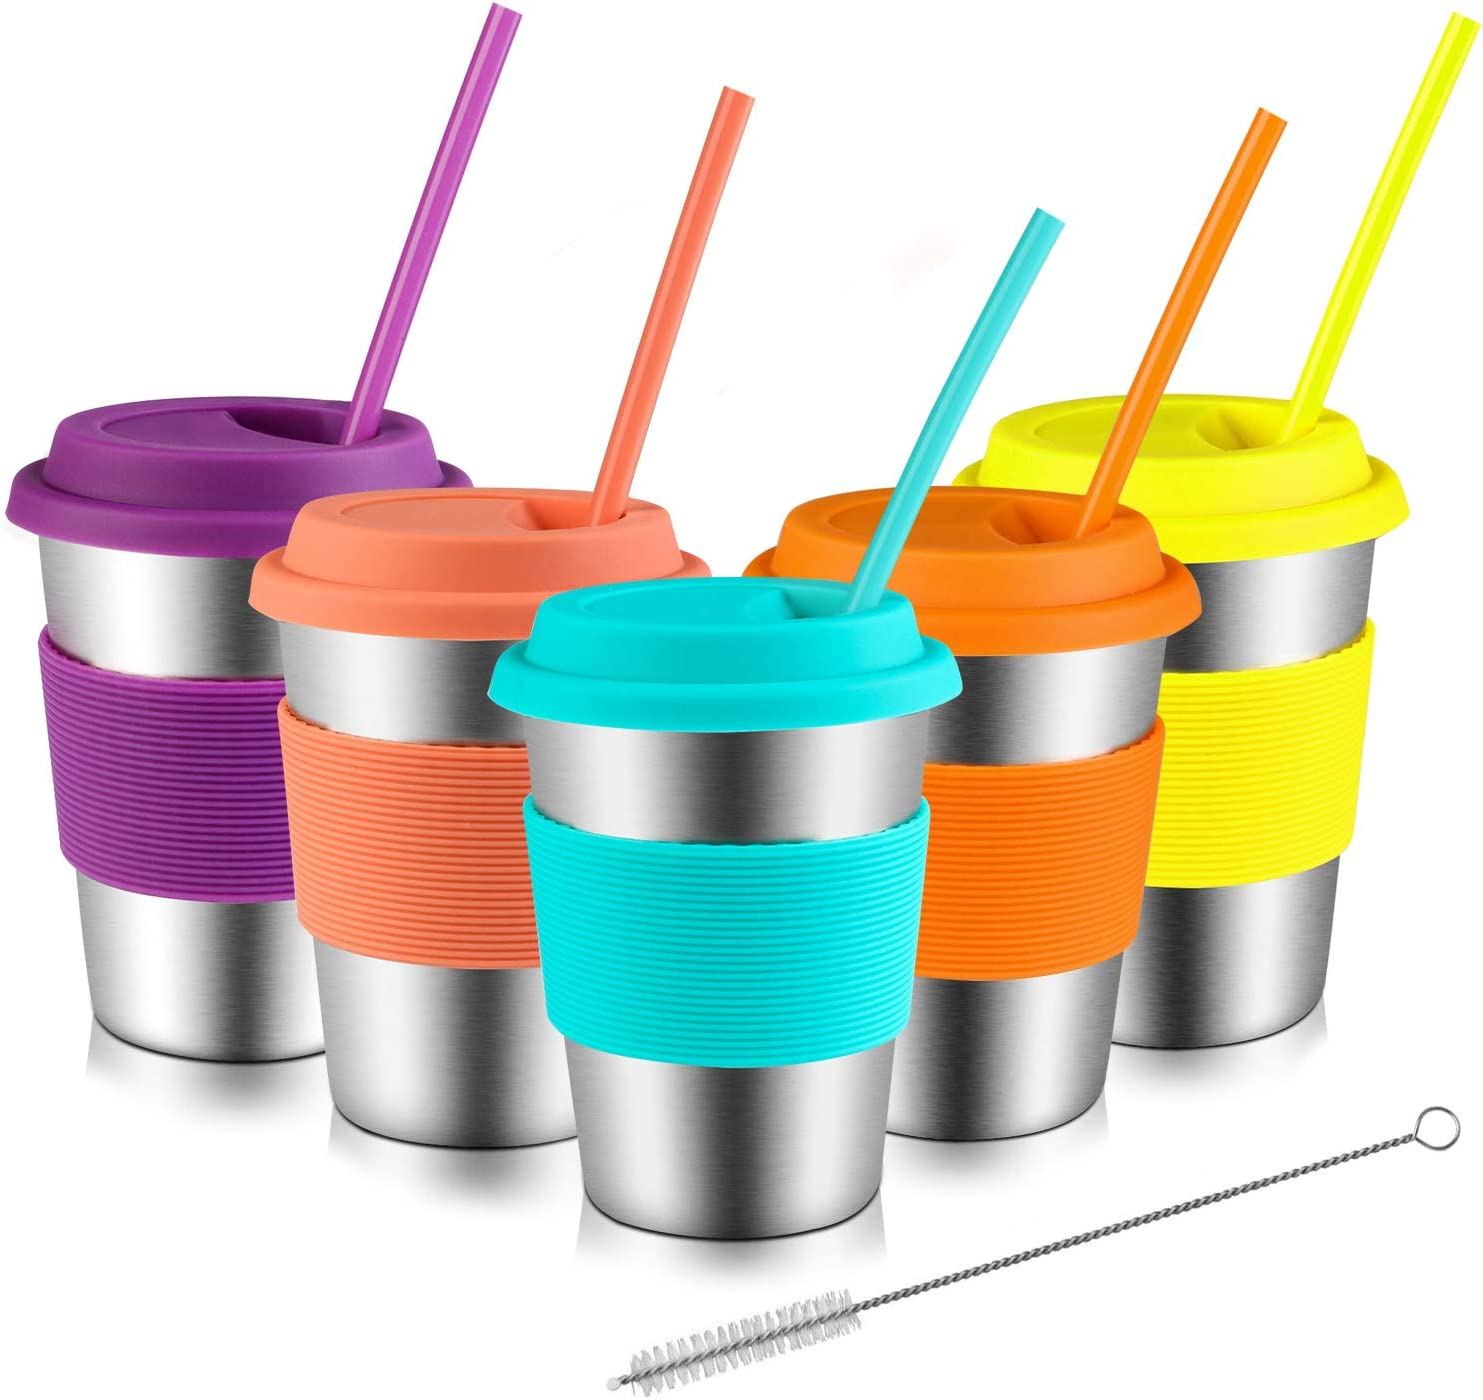 Kids Cups with Lids and Straws, Kereda Stainless Steel Toddler Cups 12oz with Silicone Sleeves Bpa Free Metal Drinking Tumblers for Children (Pack of 5)